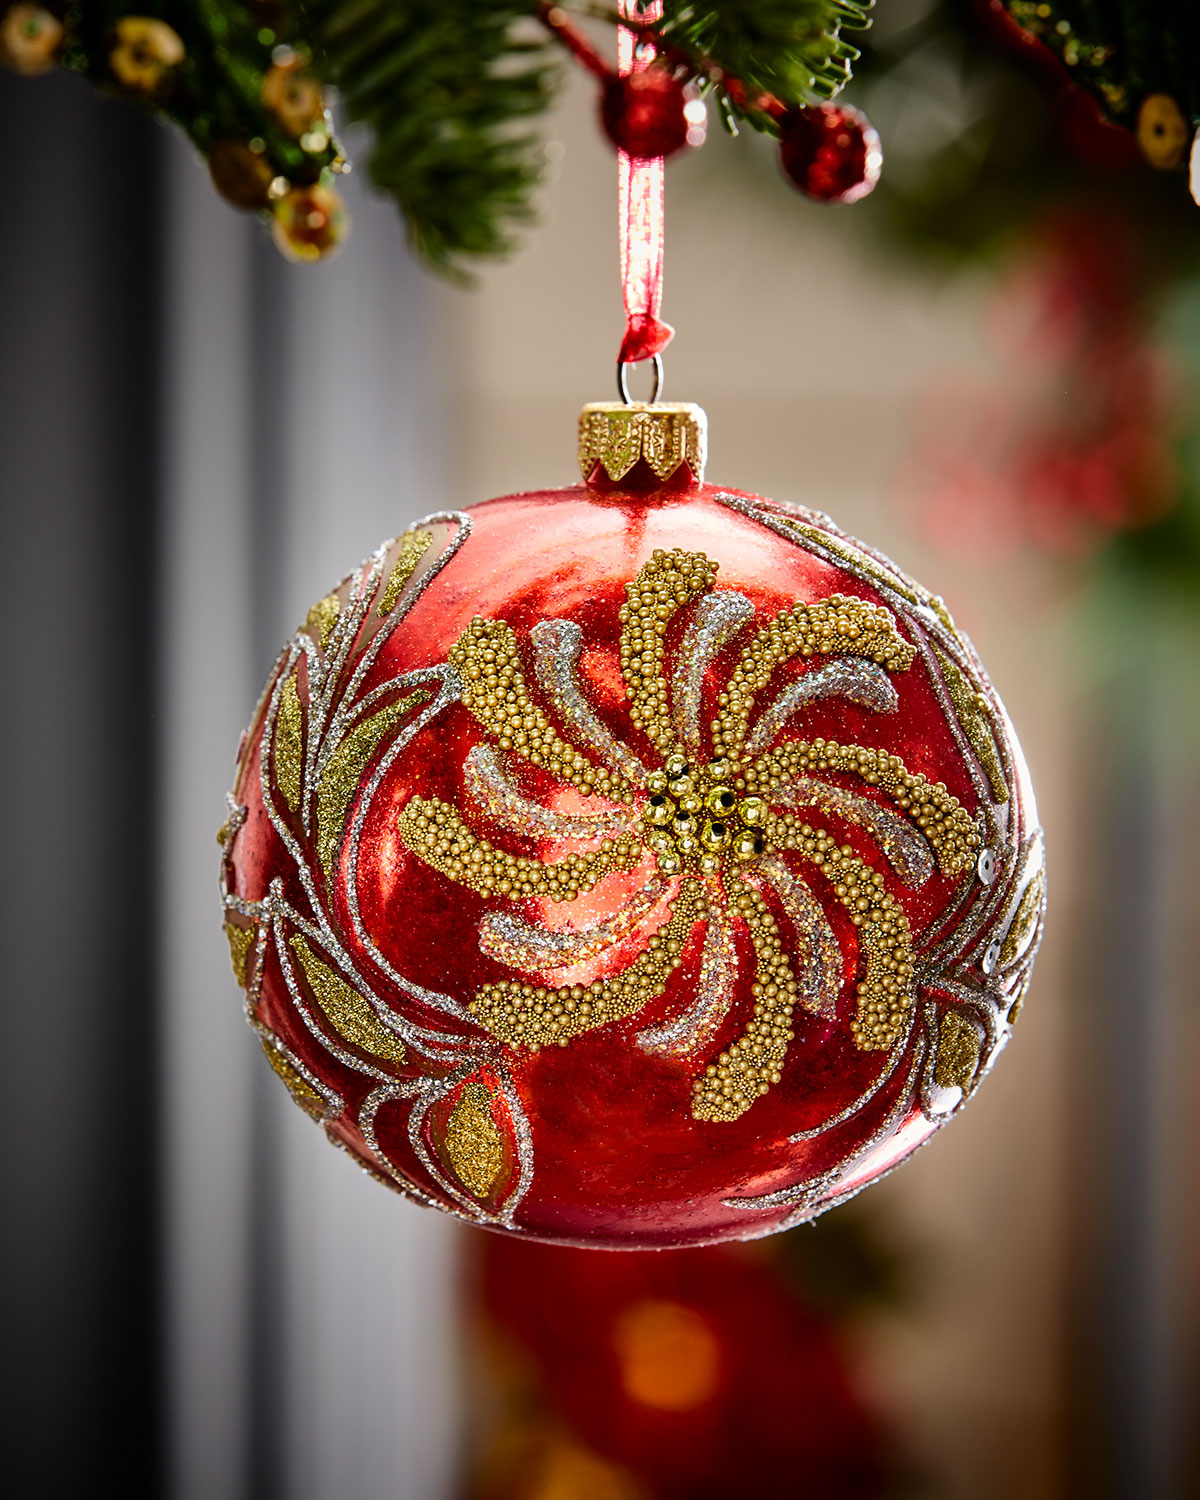 Red Glass Ball Christmas Ornament With Deco